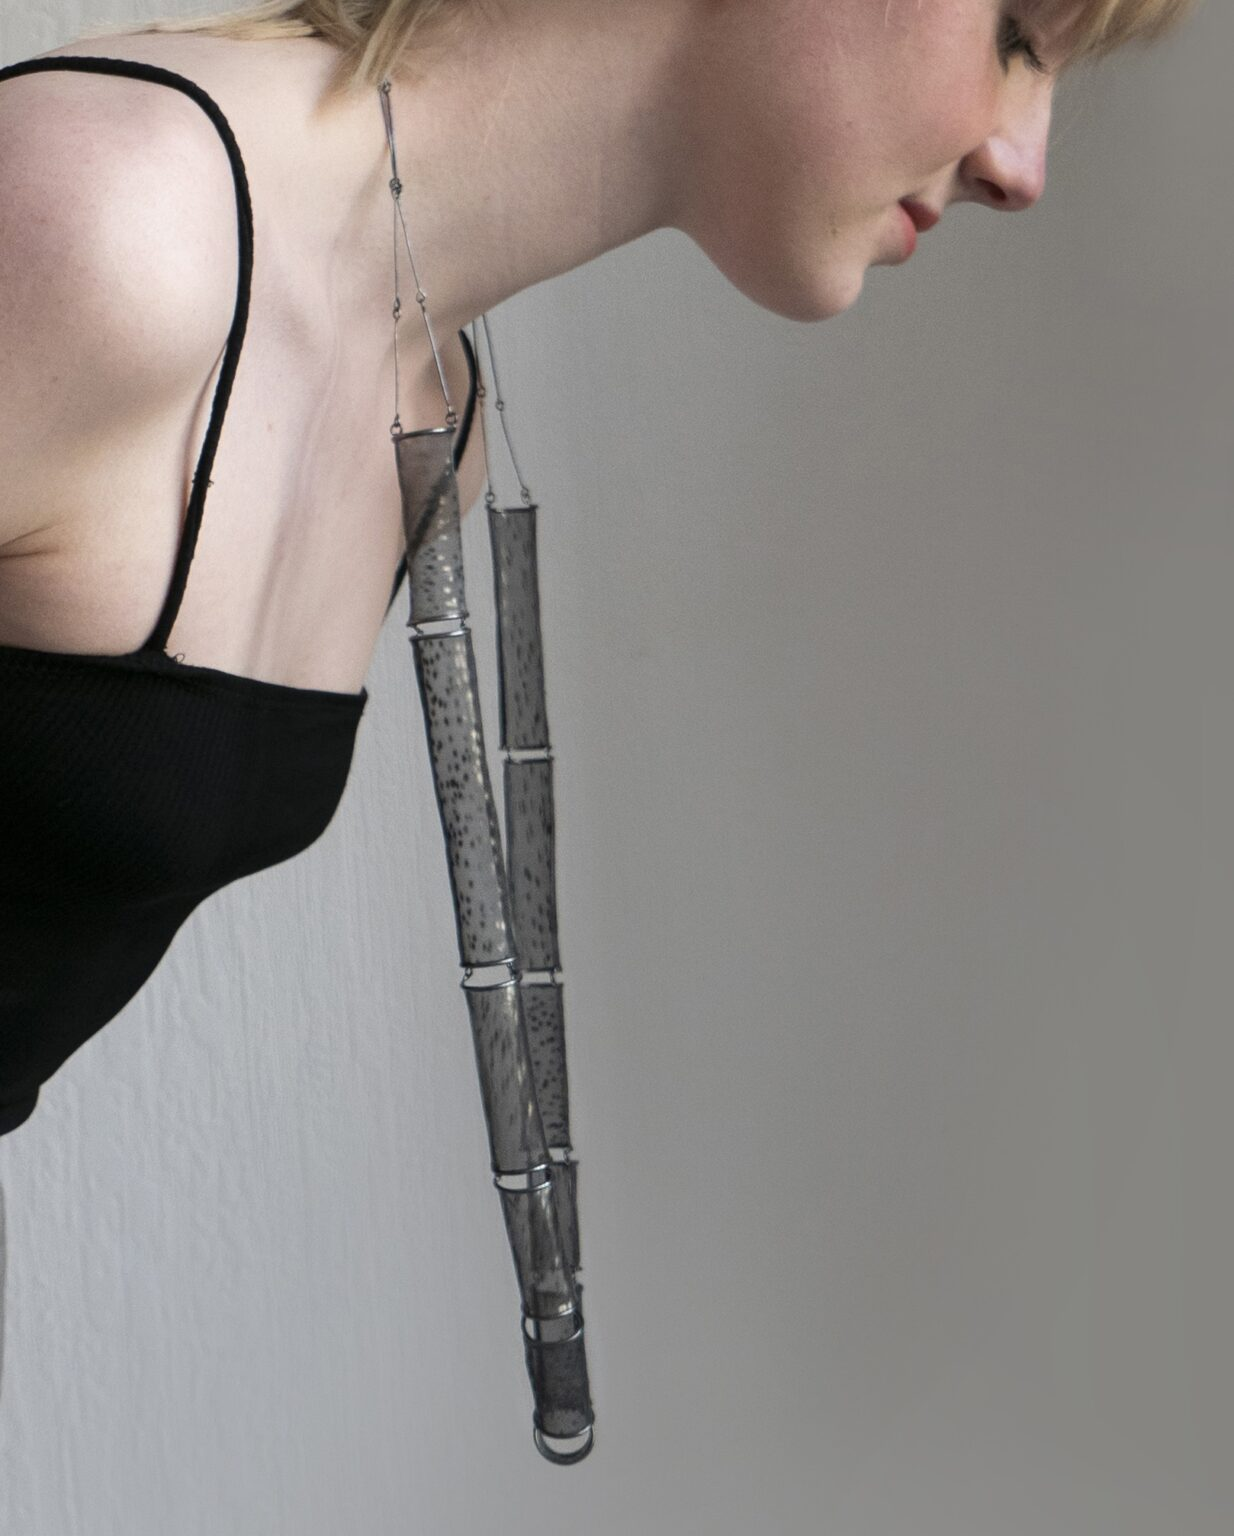 person wearing necklace, leaning so that it hangs away from the body.